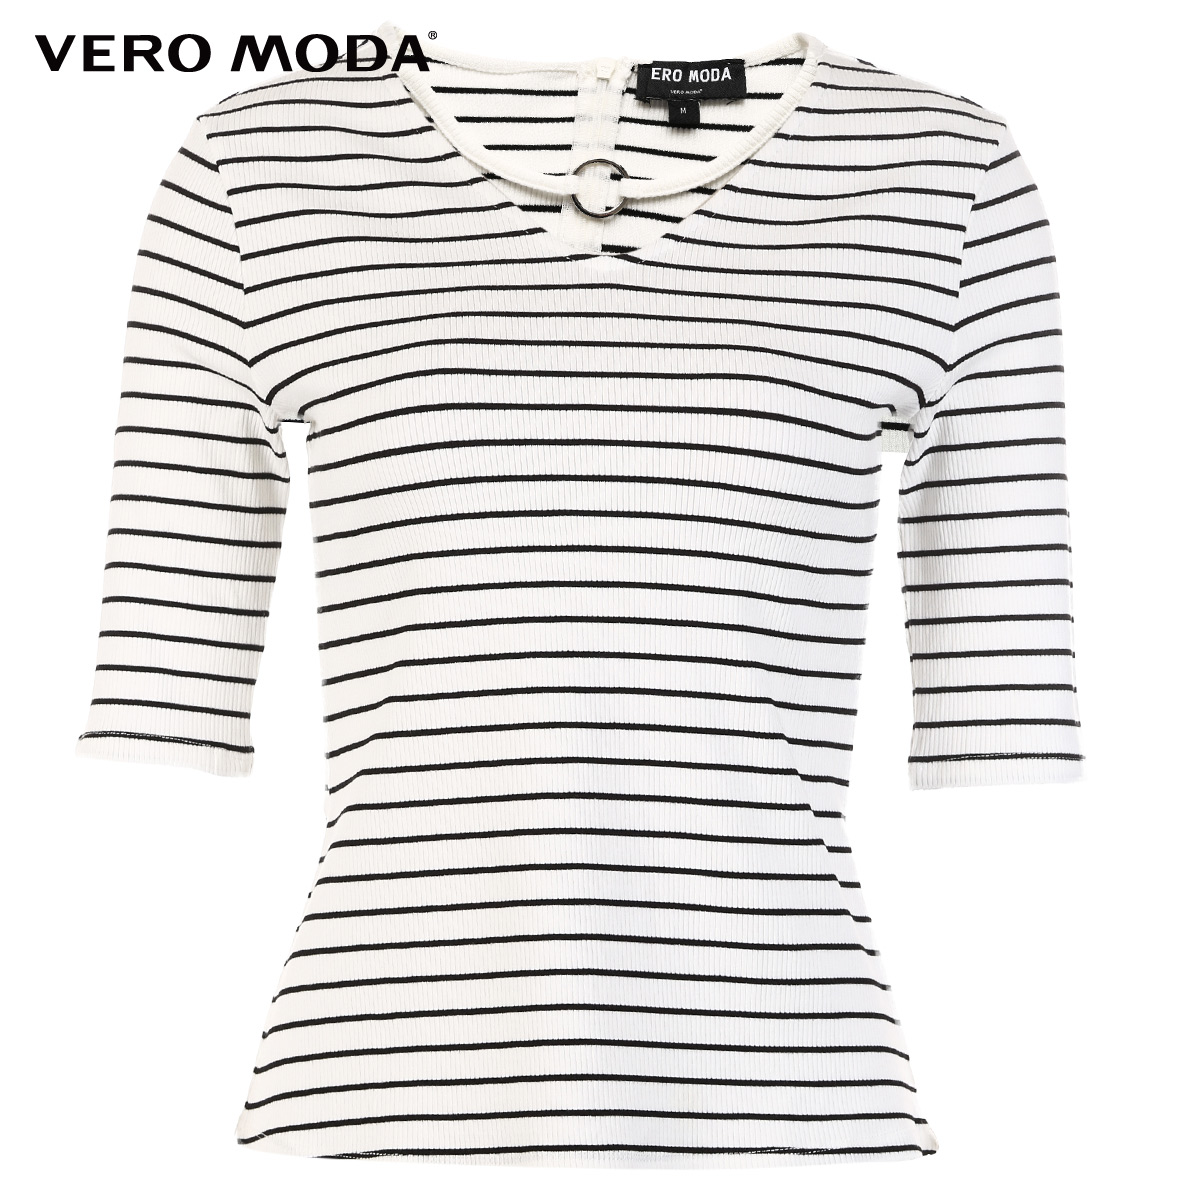 Vero Moda 2019 new neckline ring decorative stripe pattern half-sleeve sleeve T-shirt|3182T1513